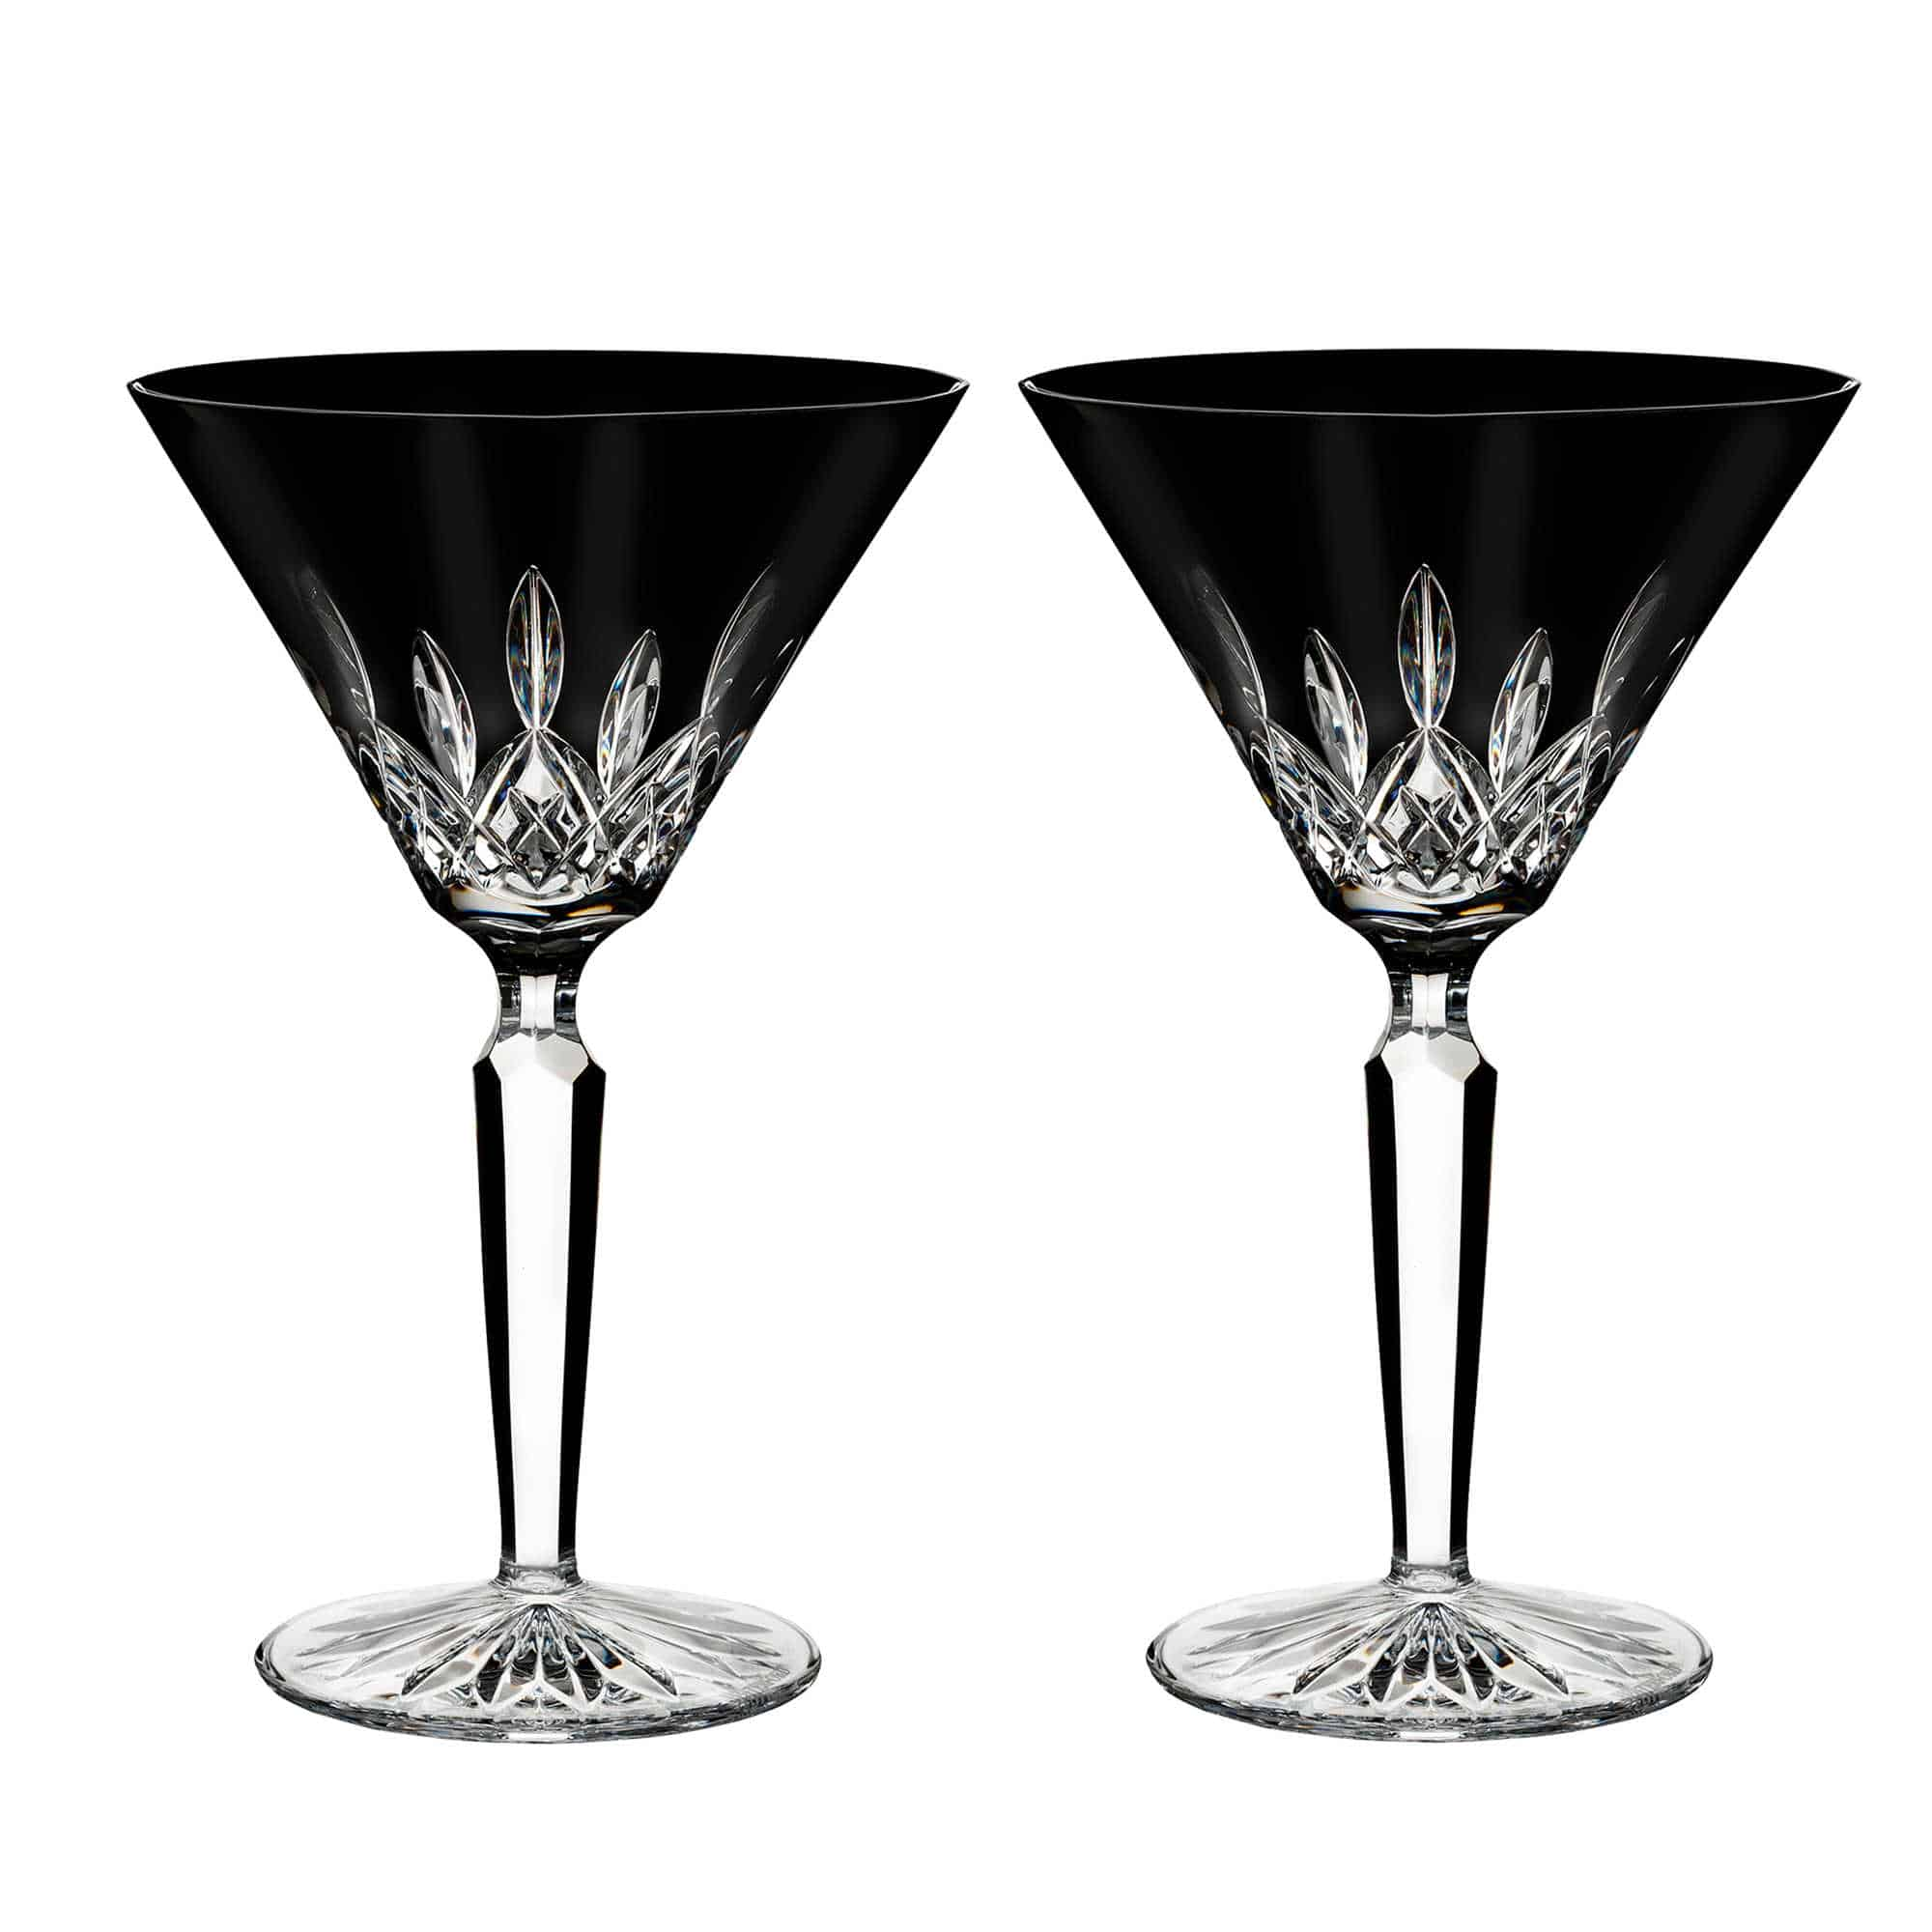 Black martini glasses with a lead crystal material.